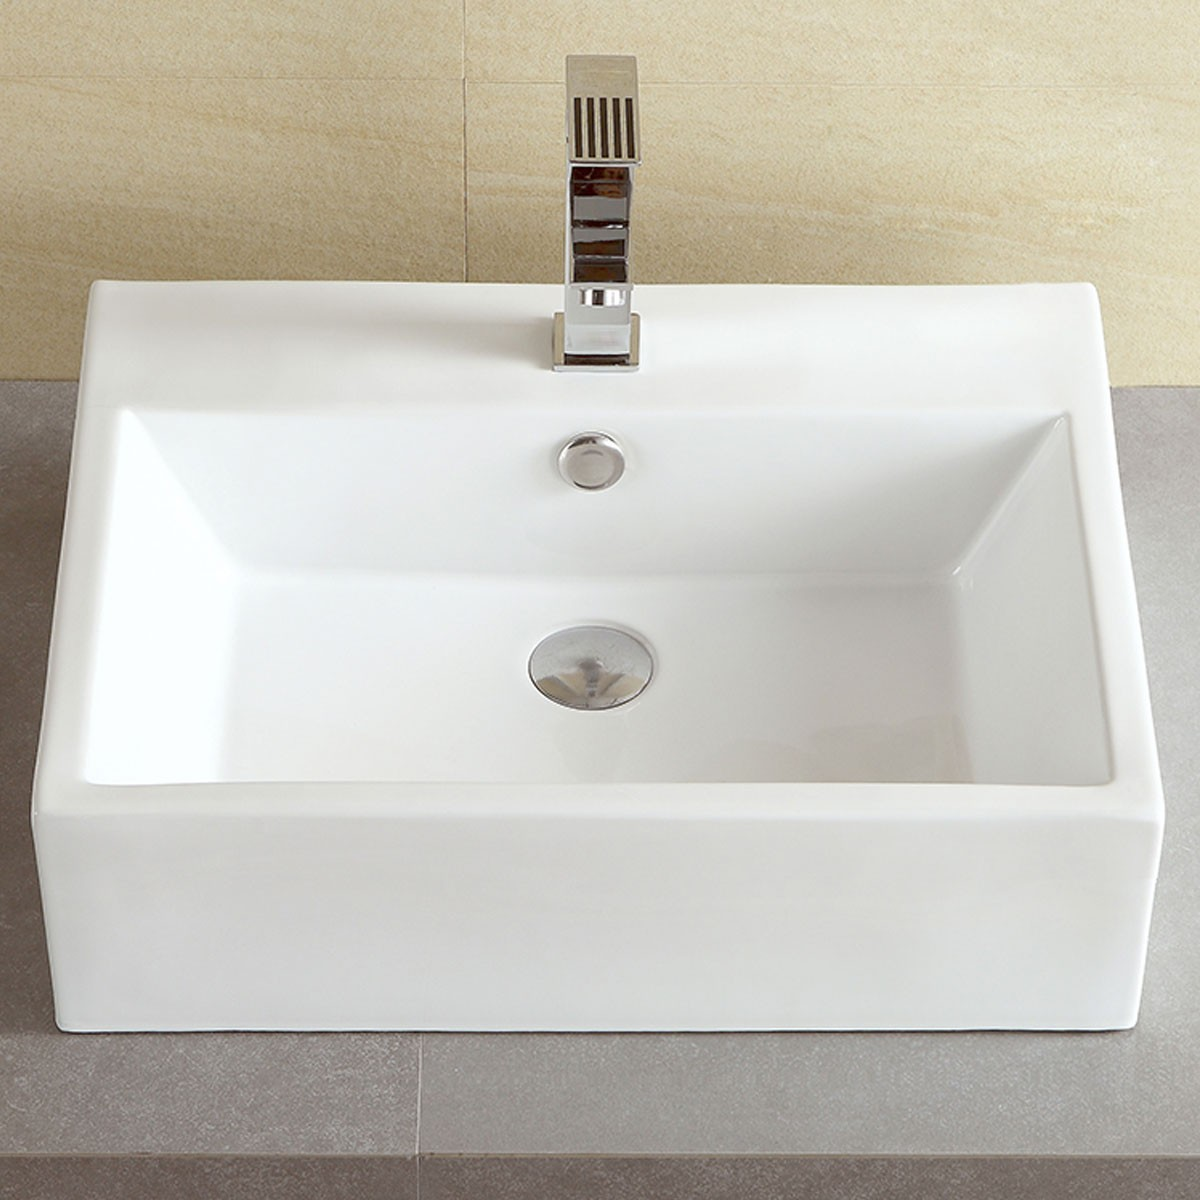 Decoraport Lavabo-Vasque Rectangle de Dessus de Comptoir en Céramique Blanche (CL-1094)